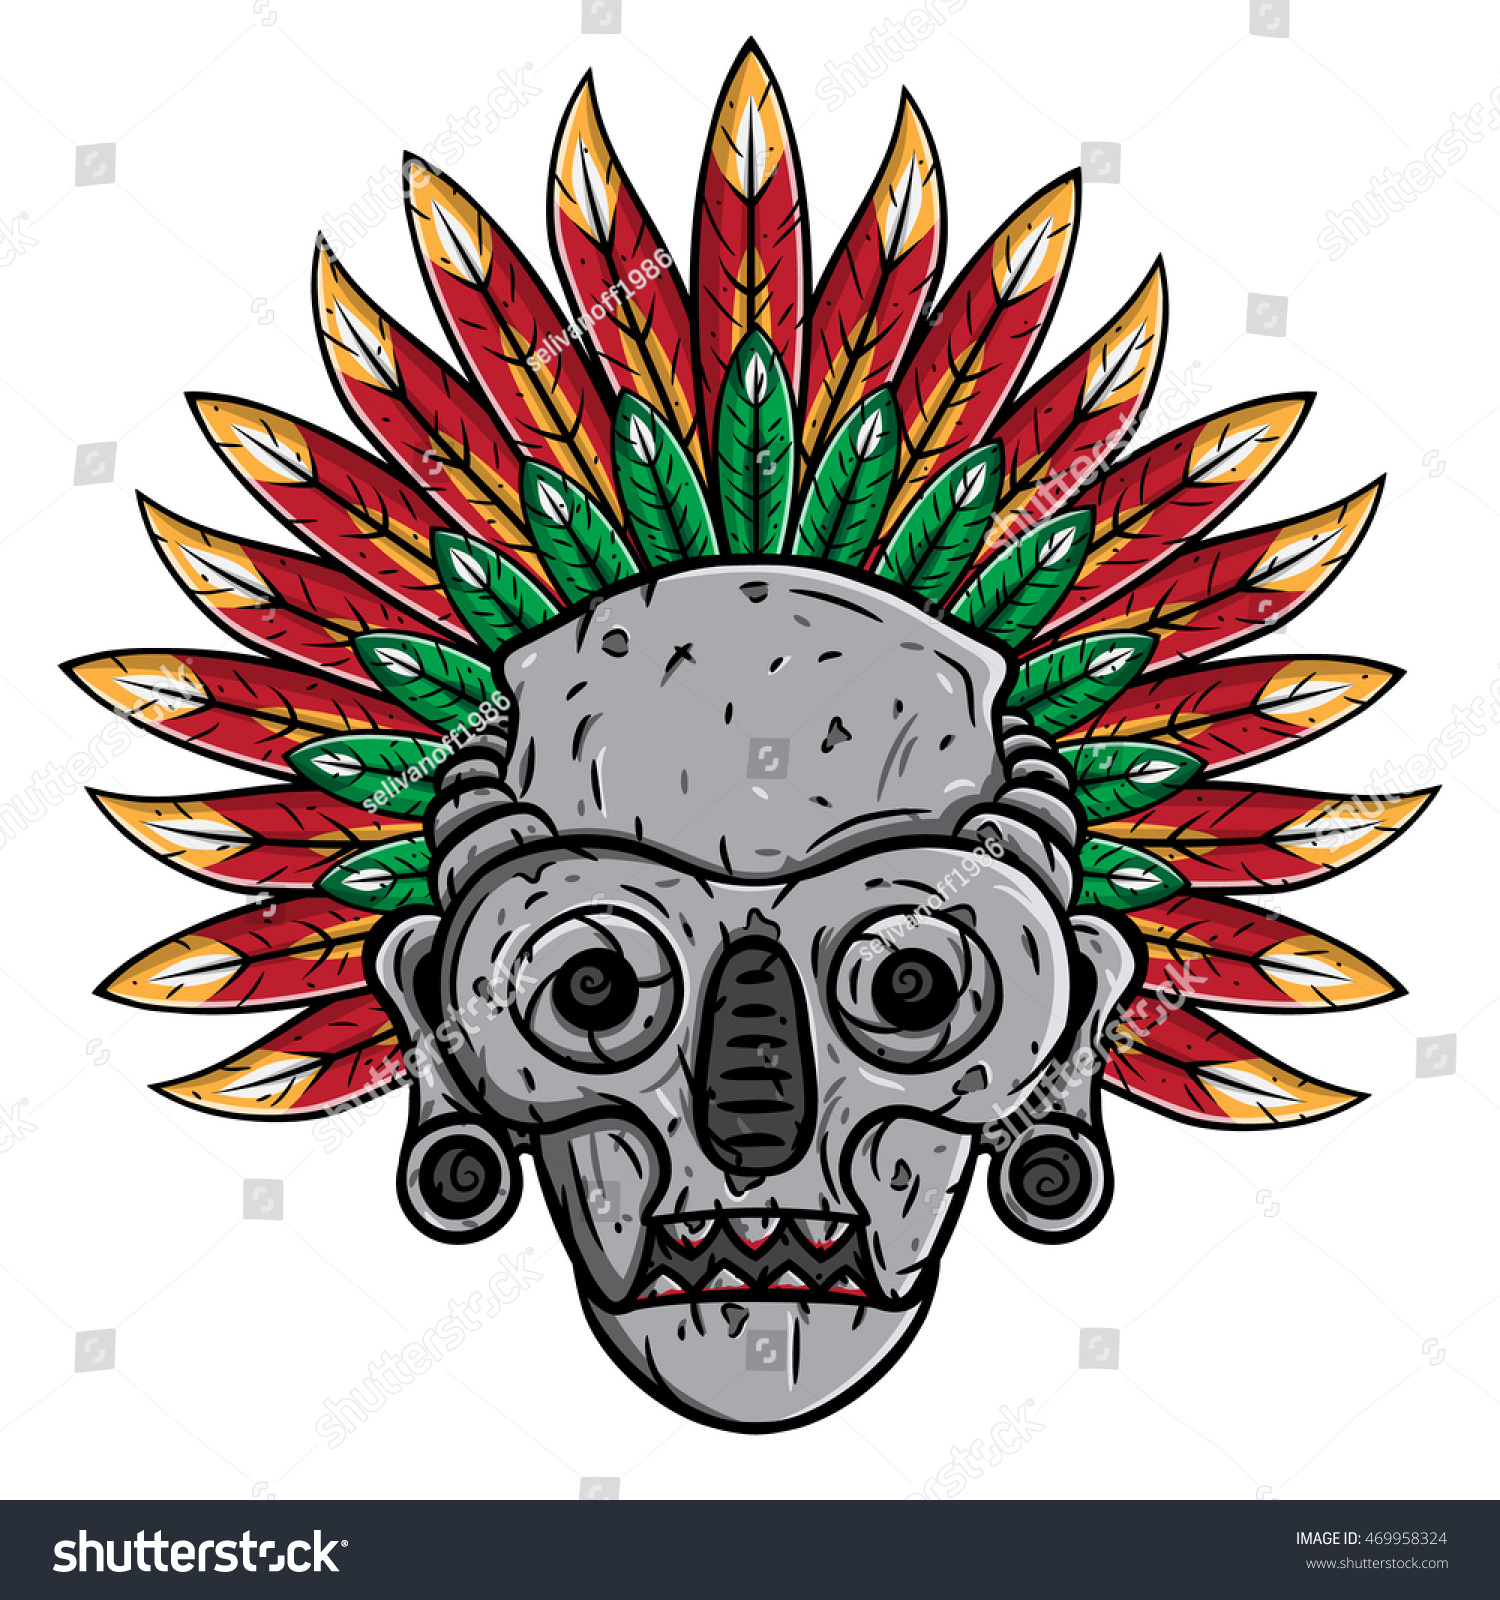 Aztec mask stock vector 469958324 shutterstock for Aztec mask template